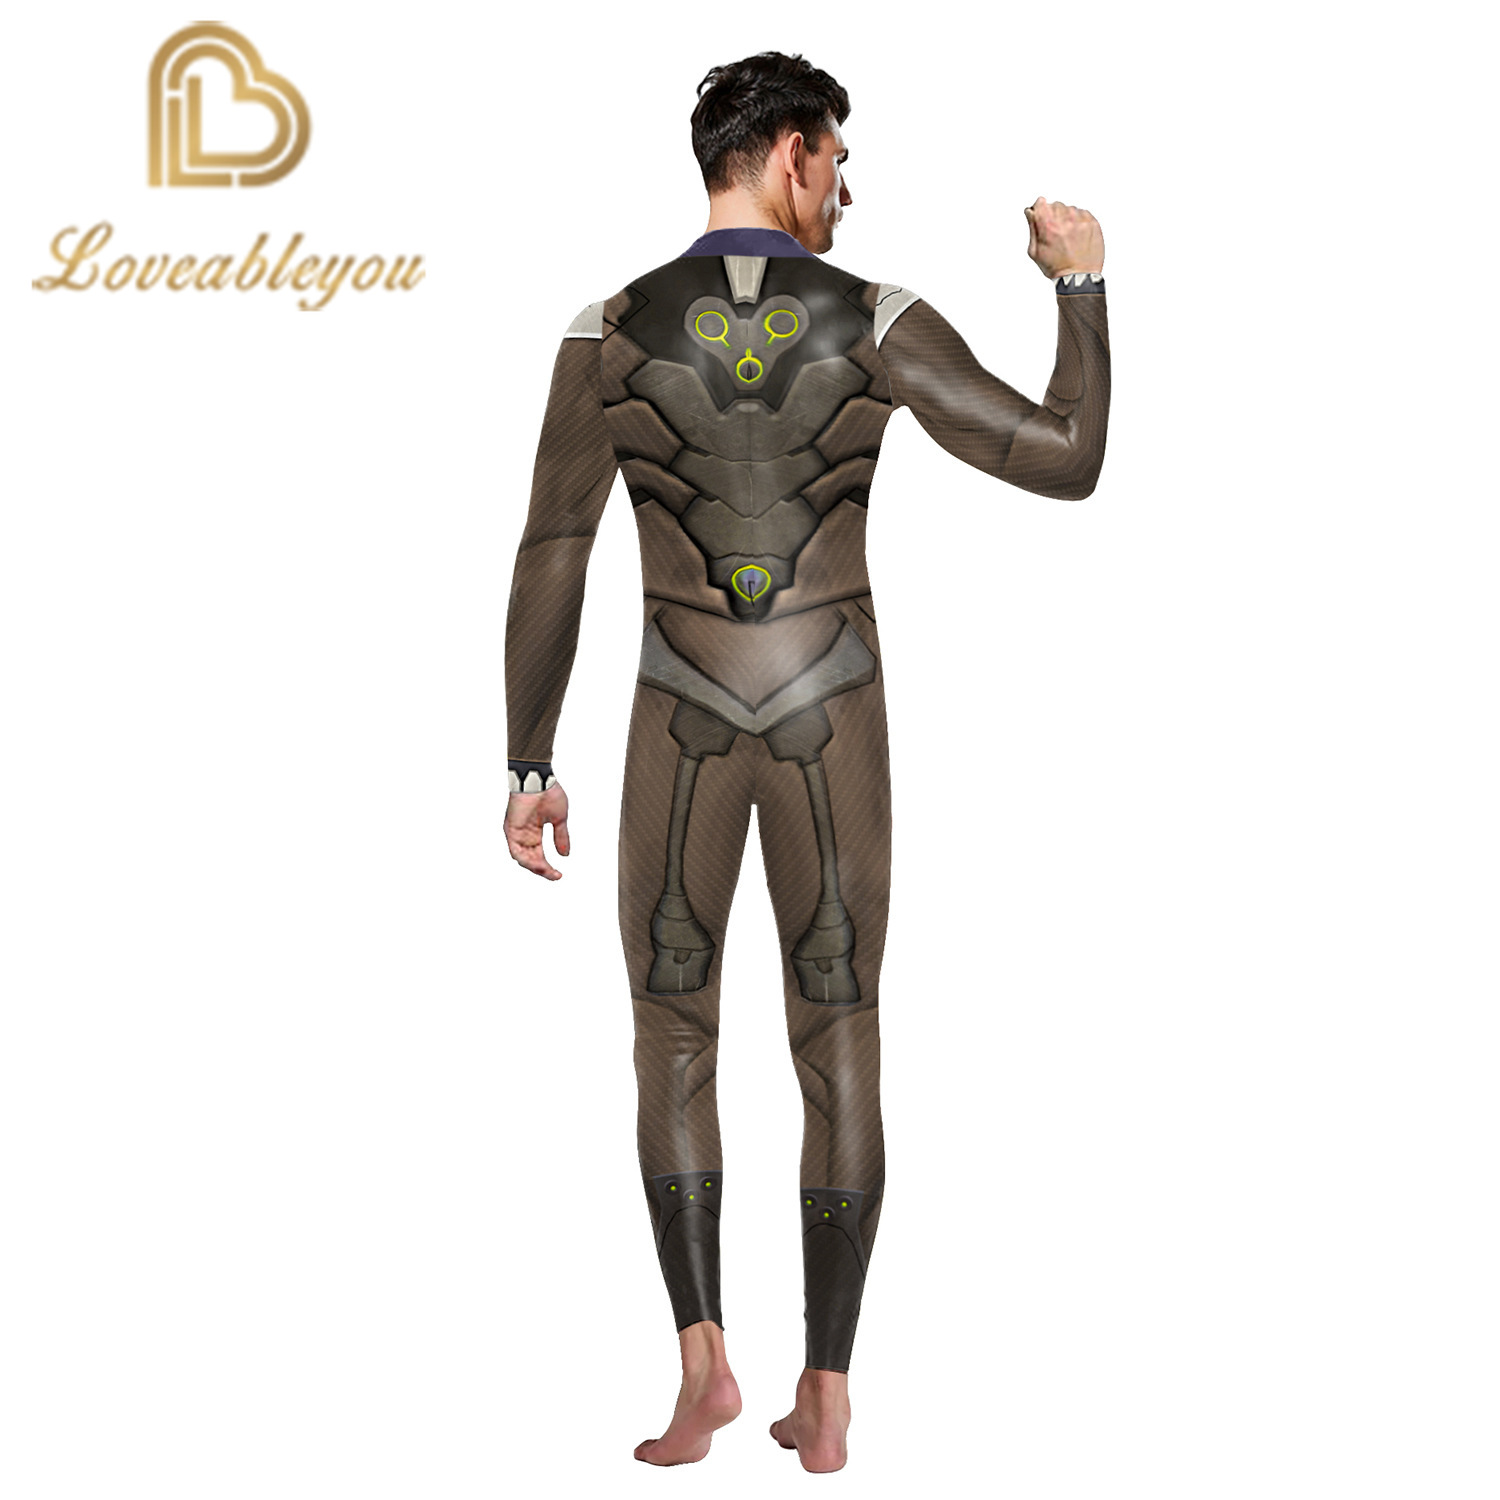 Hot Sale 2019 New Fashion Gaming Cosplay Costume 3D Printed Bodysuit for man Party Cospaly Bodysuit Sexy Jumpsuits 1